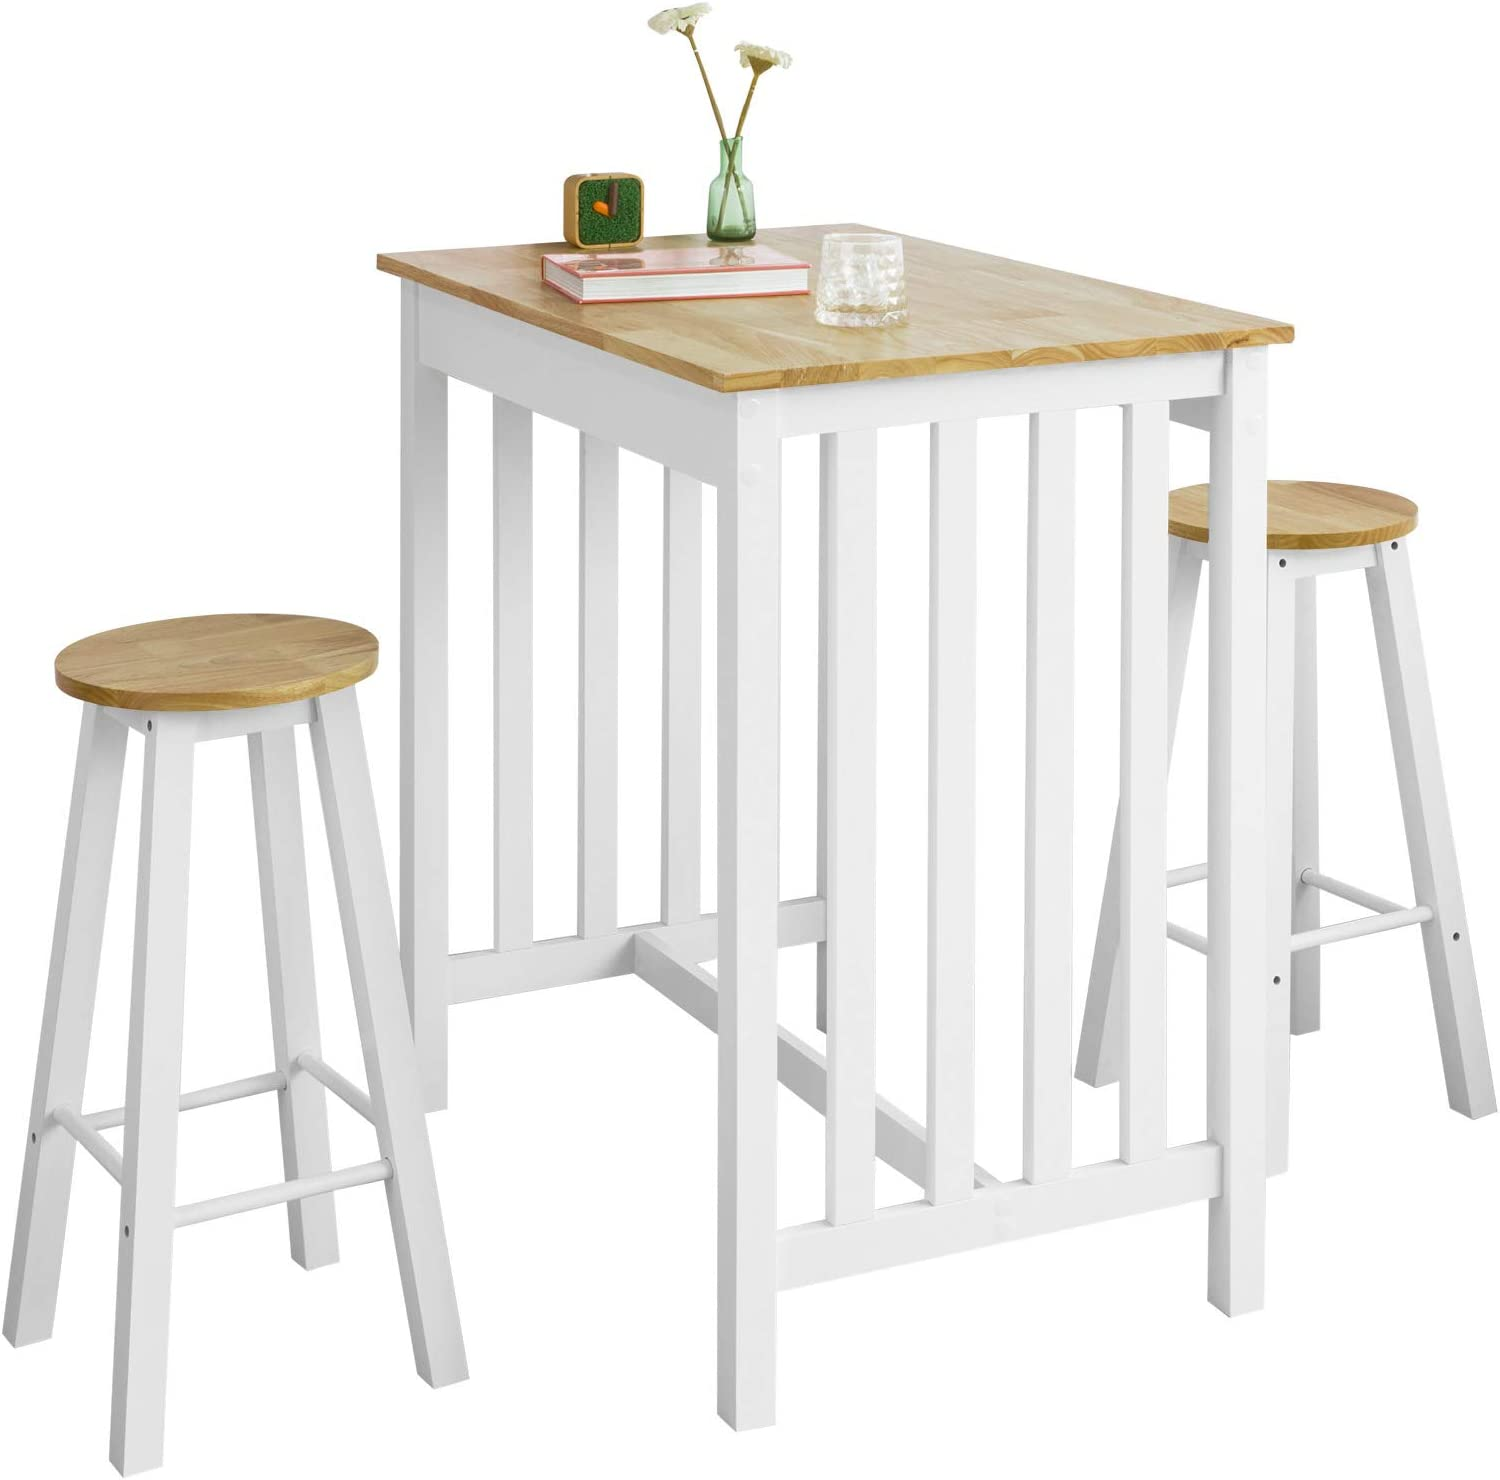 SoBuy FWT9 WN 9 Piece Bar Table Set with 9 Bar Stools Bistro Table Kitchen  Bar Table White / Natural